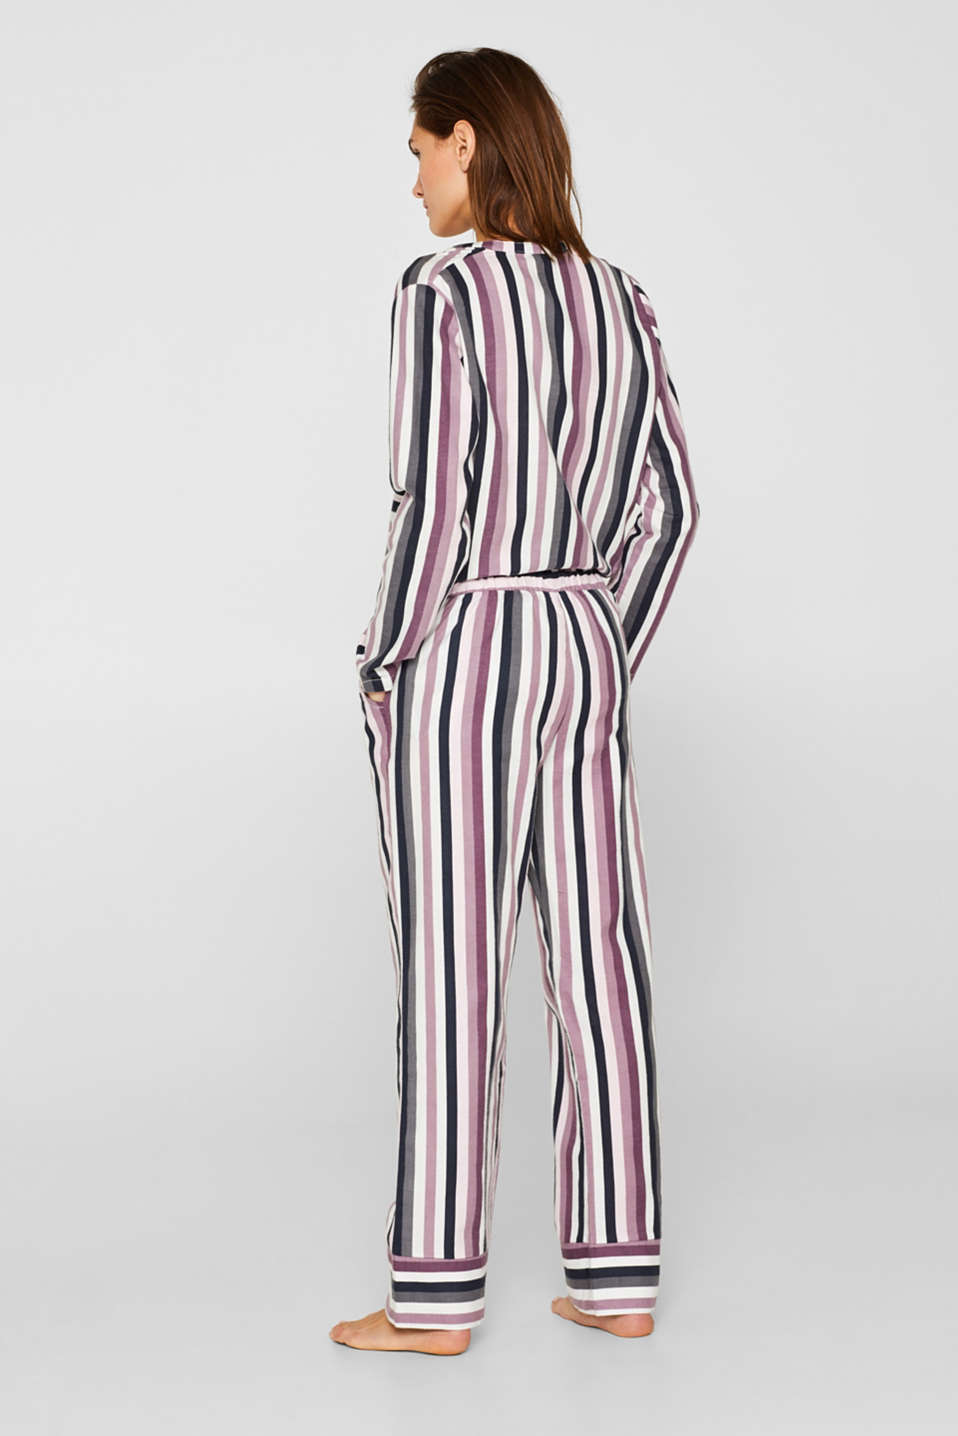 Flannel trousers with satin ribbon ties, 100% cotton, MAUVE, detail image number 2